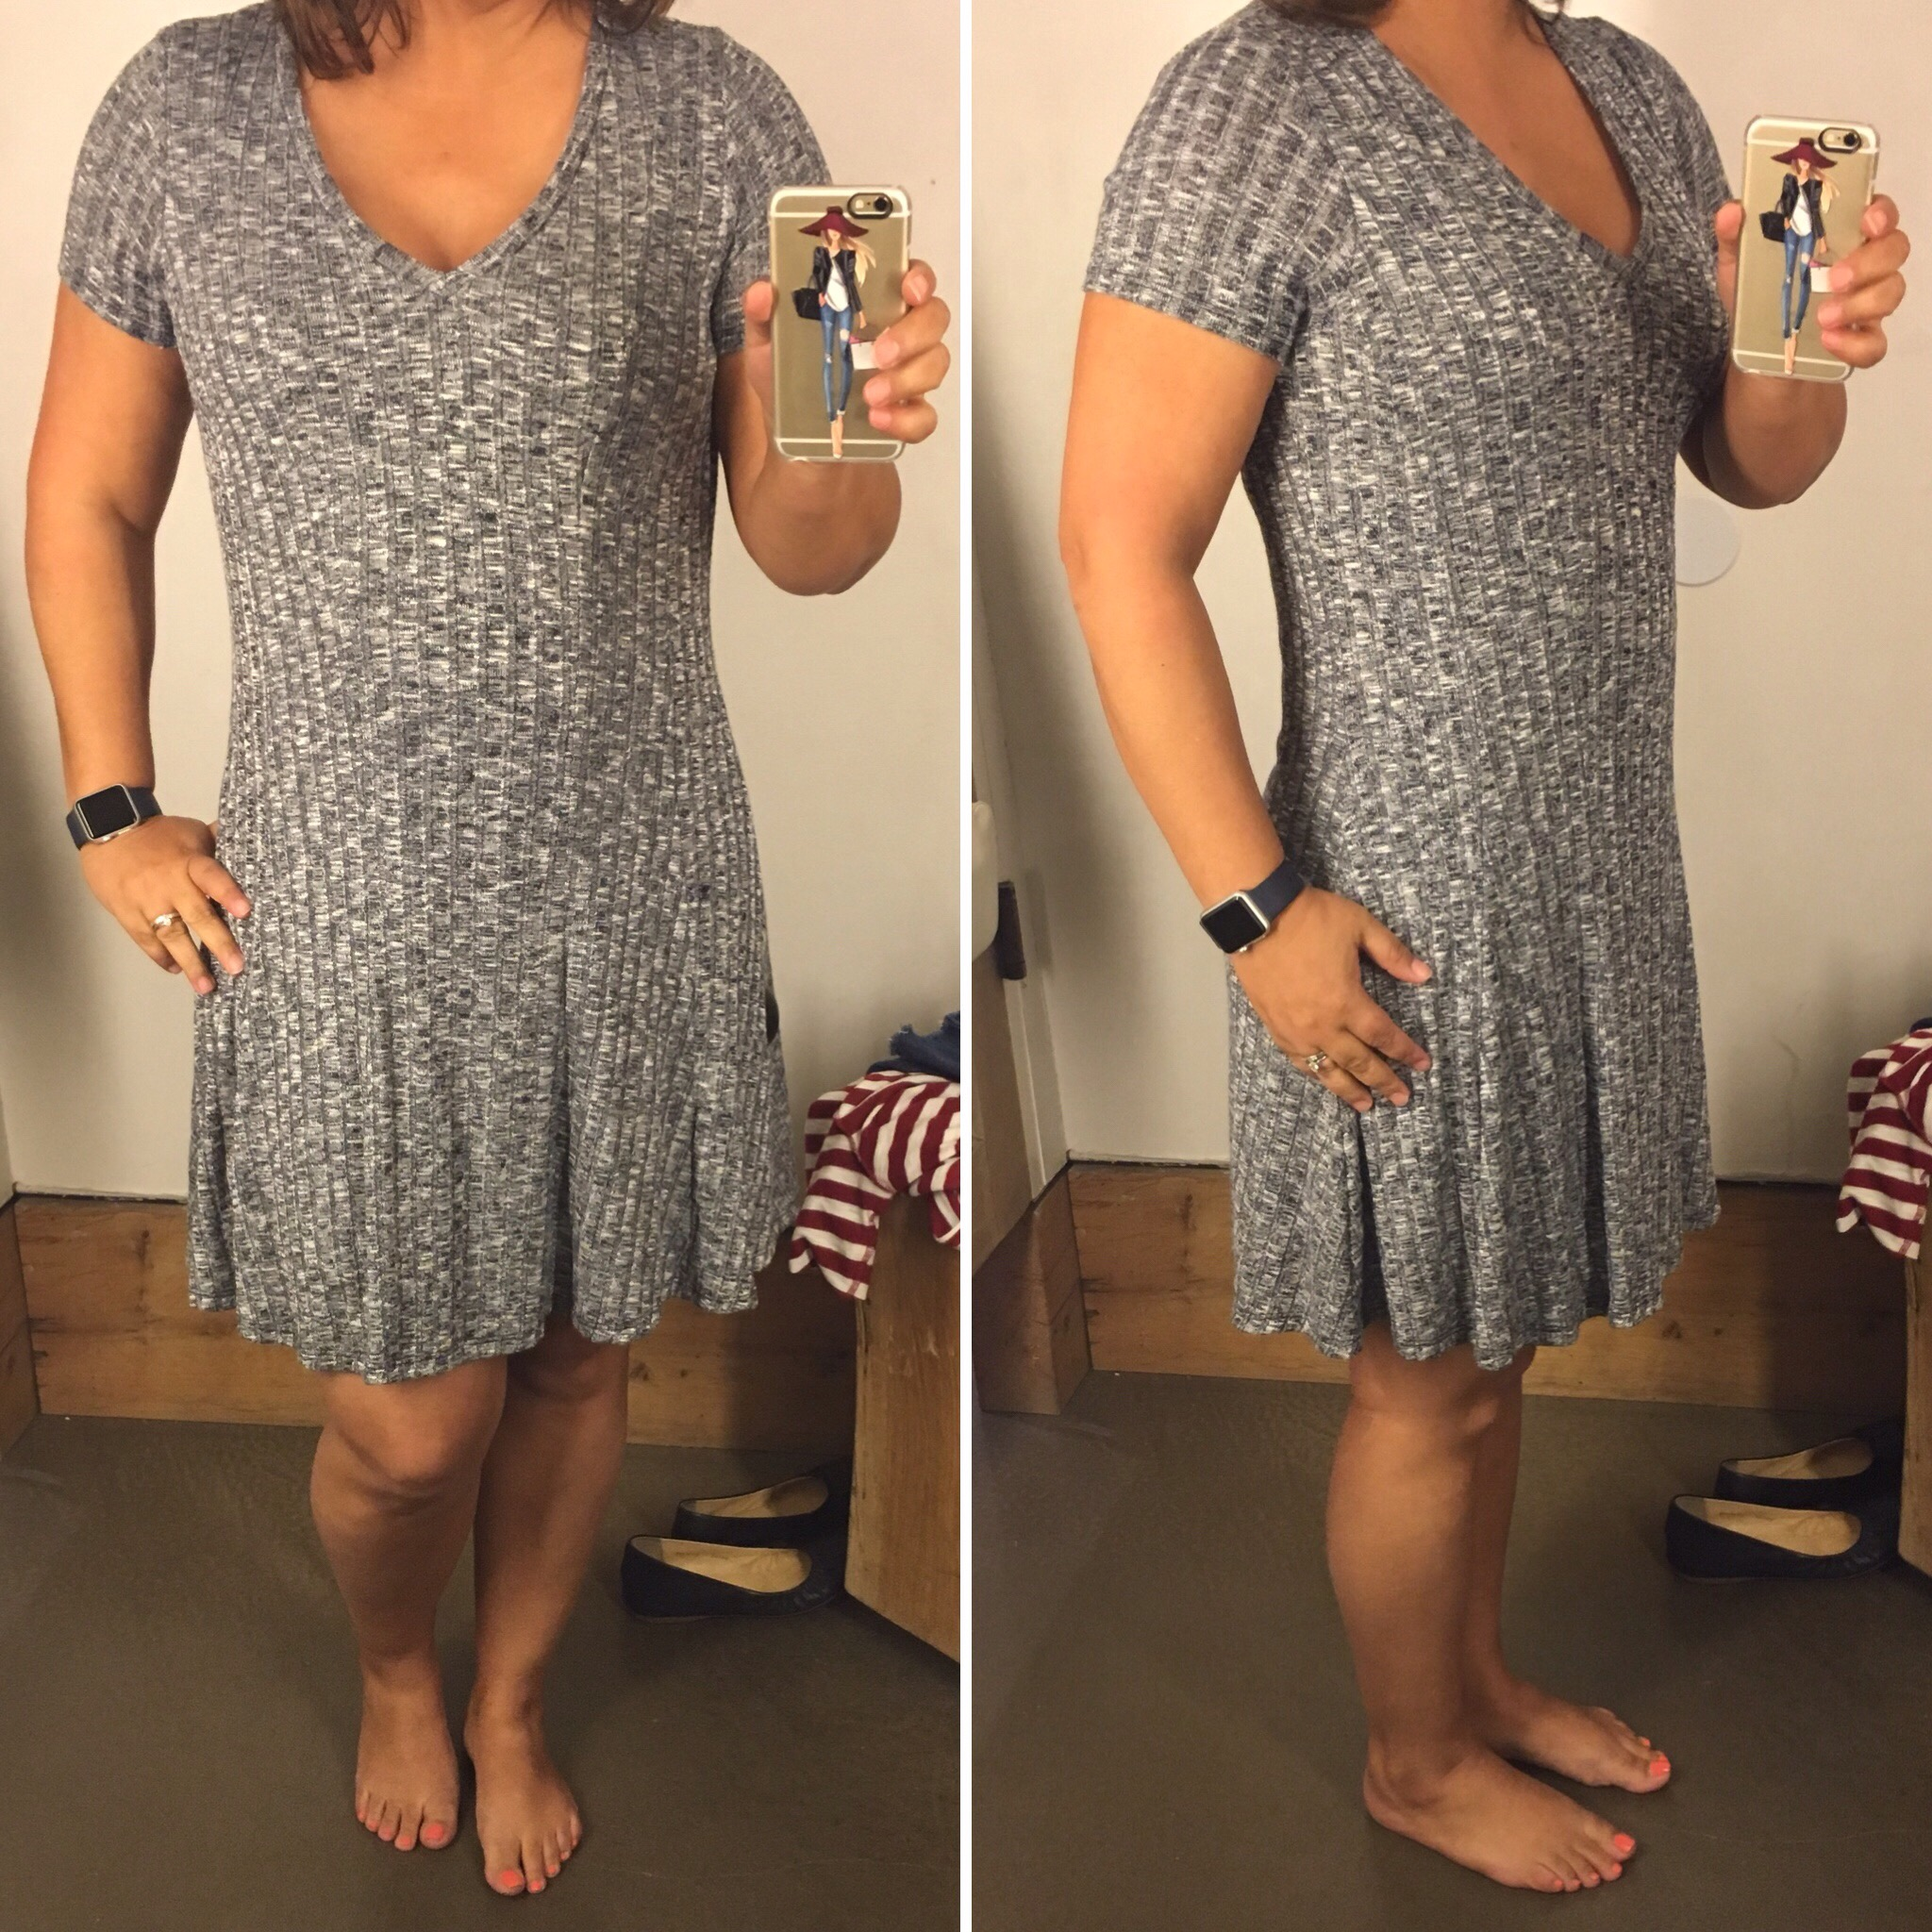 f0b1e55eb505 The Small was definitely the best fit. The length is a few inches above my  knee but I see this as a casual summer dress for outdoor BBQs or food truck  park ...